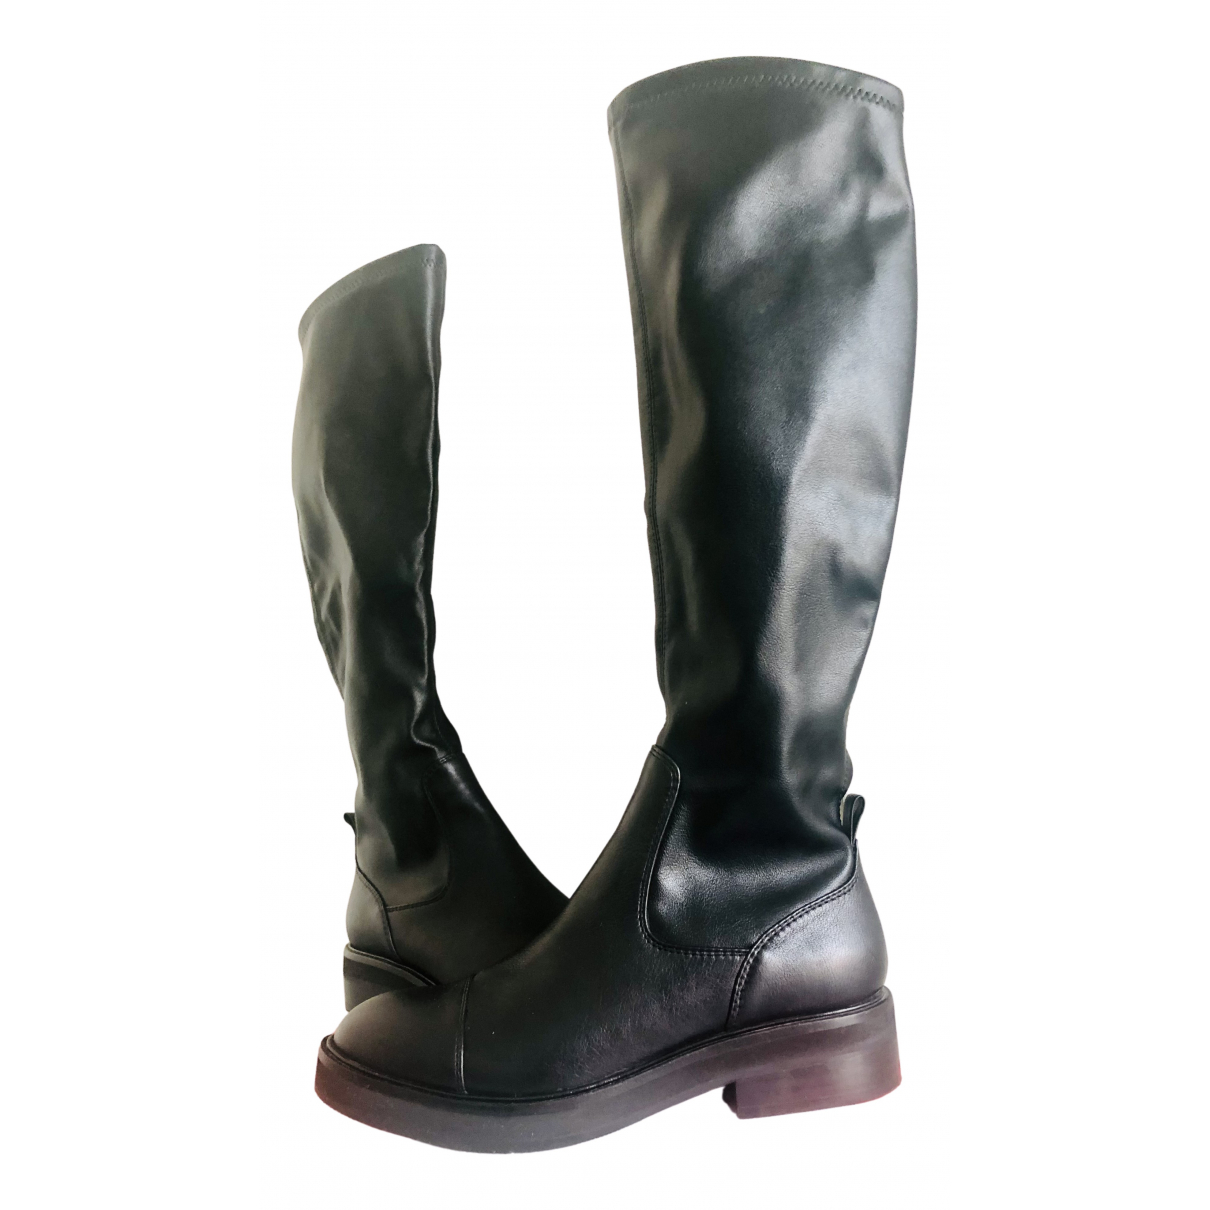 Intrend N Black Leather Boots for Women 36 EU